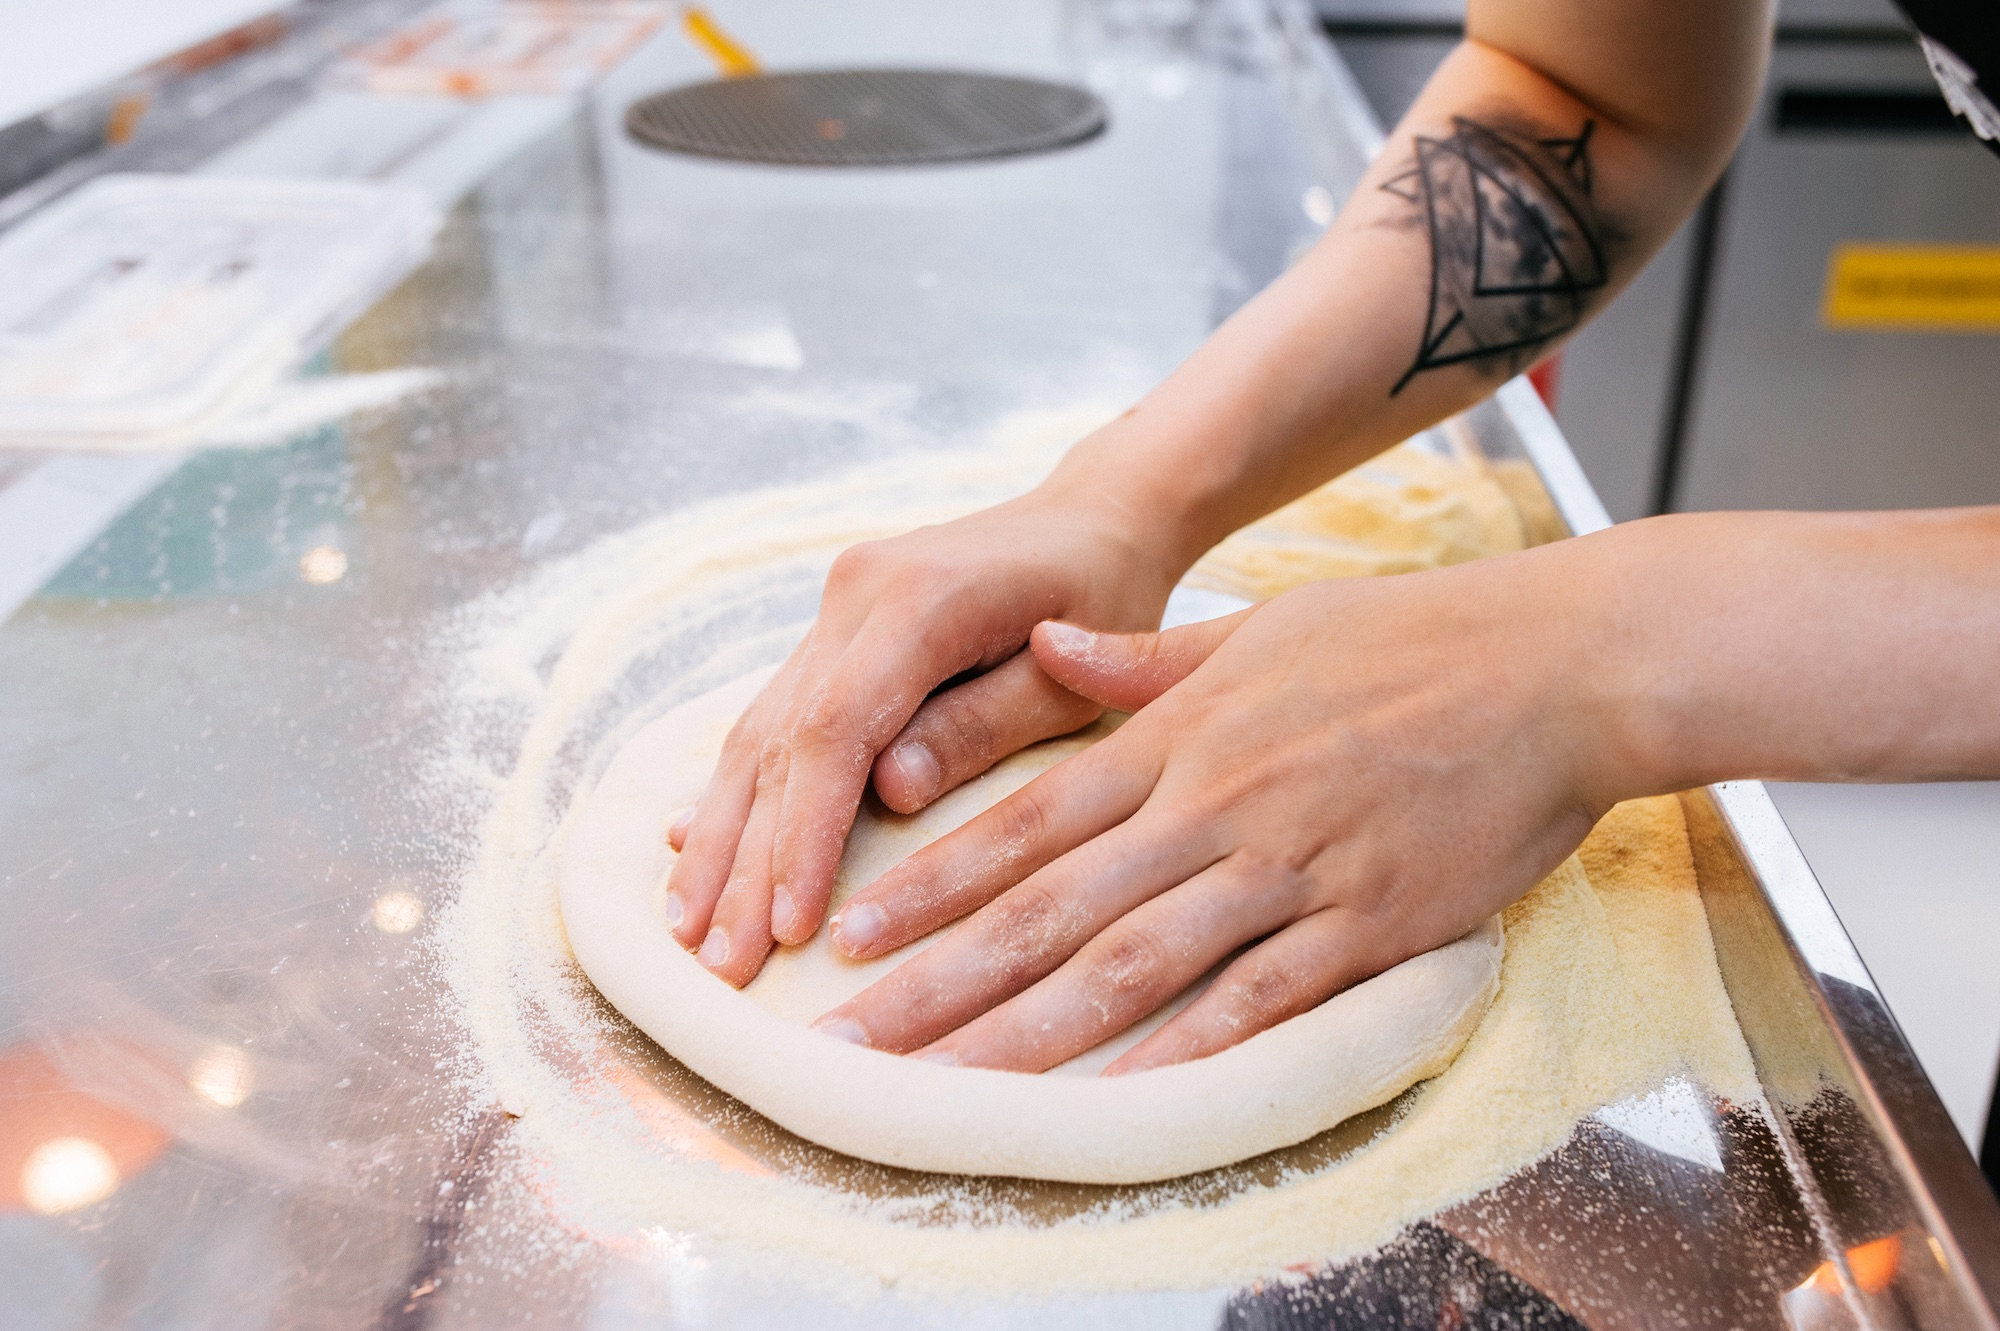 Why do we make pizza without gloves at Dodo Pizza?